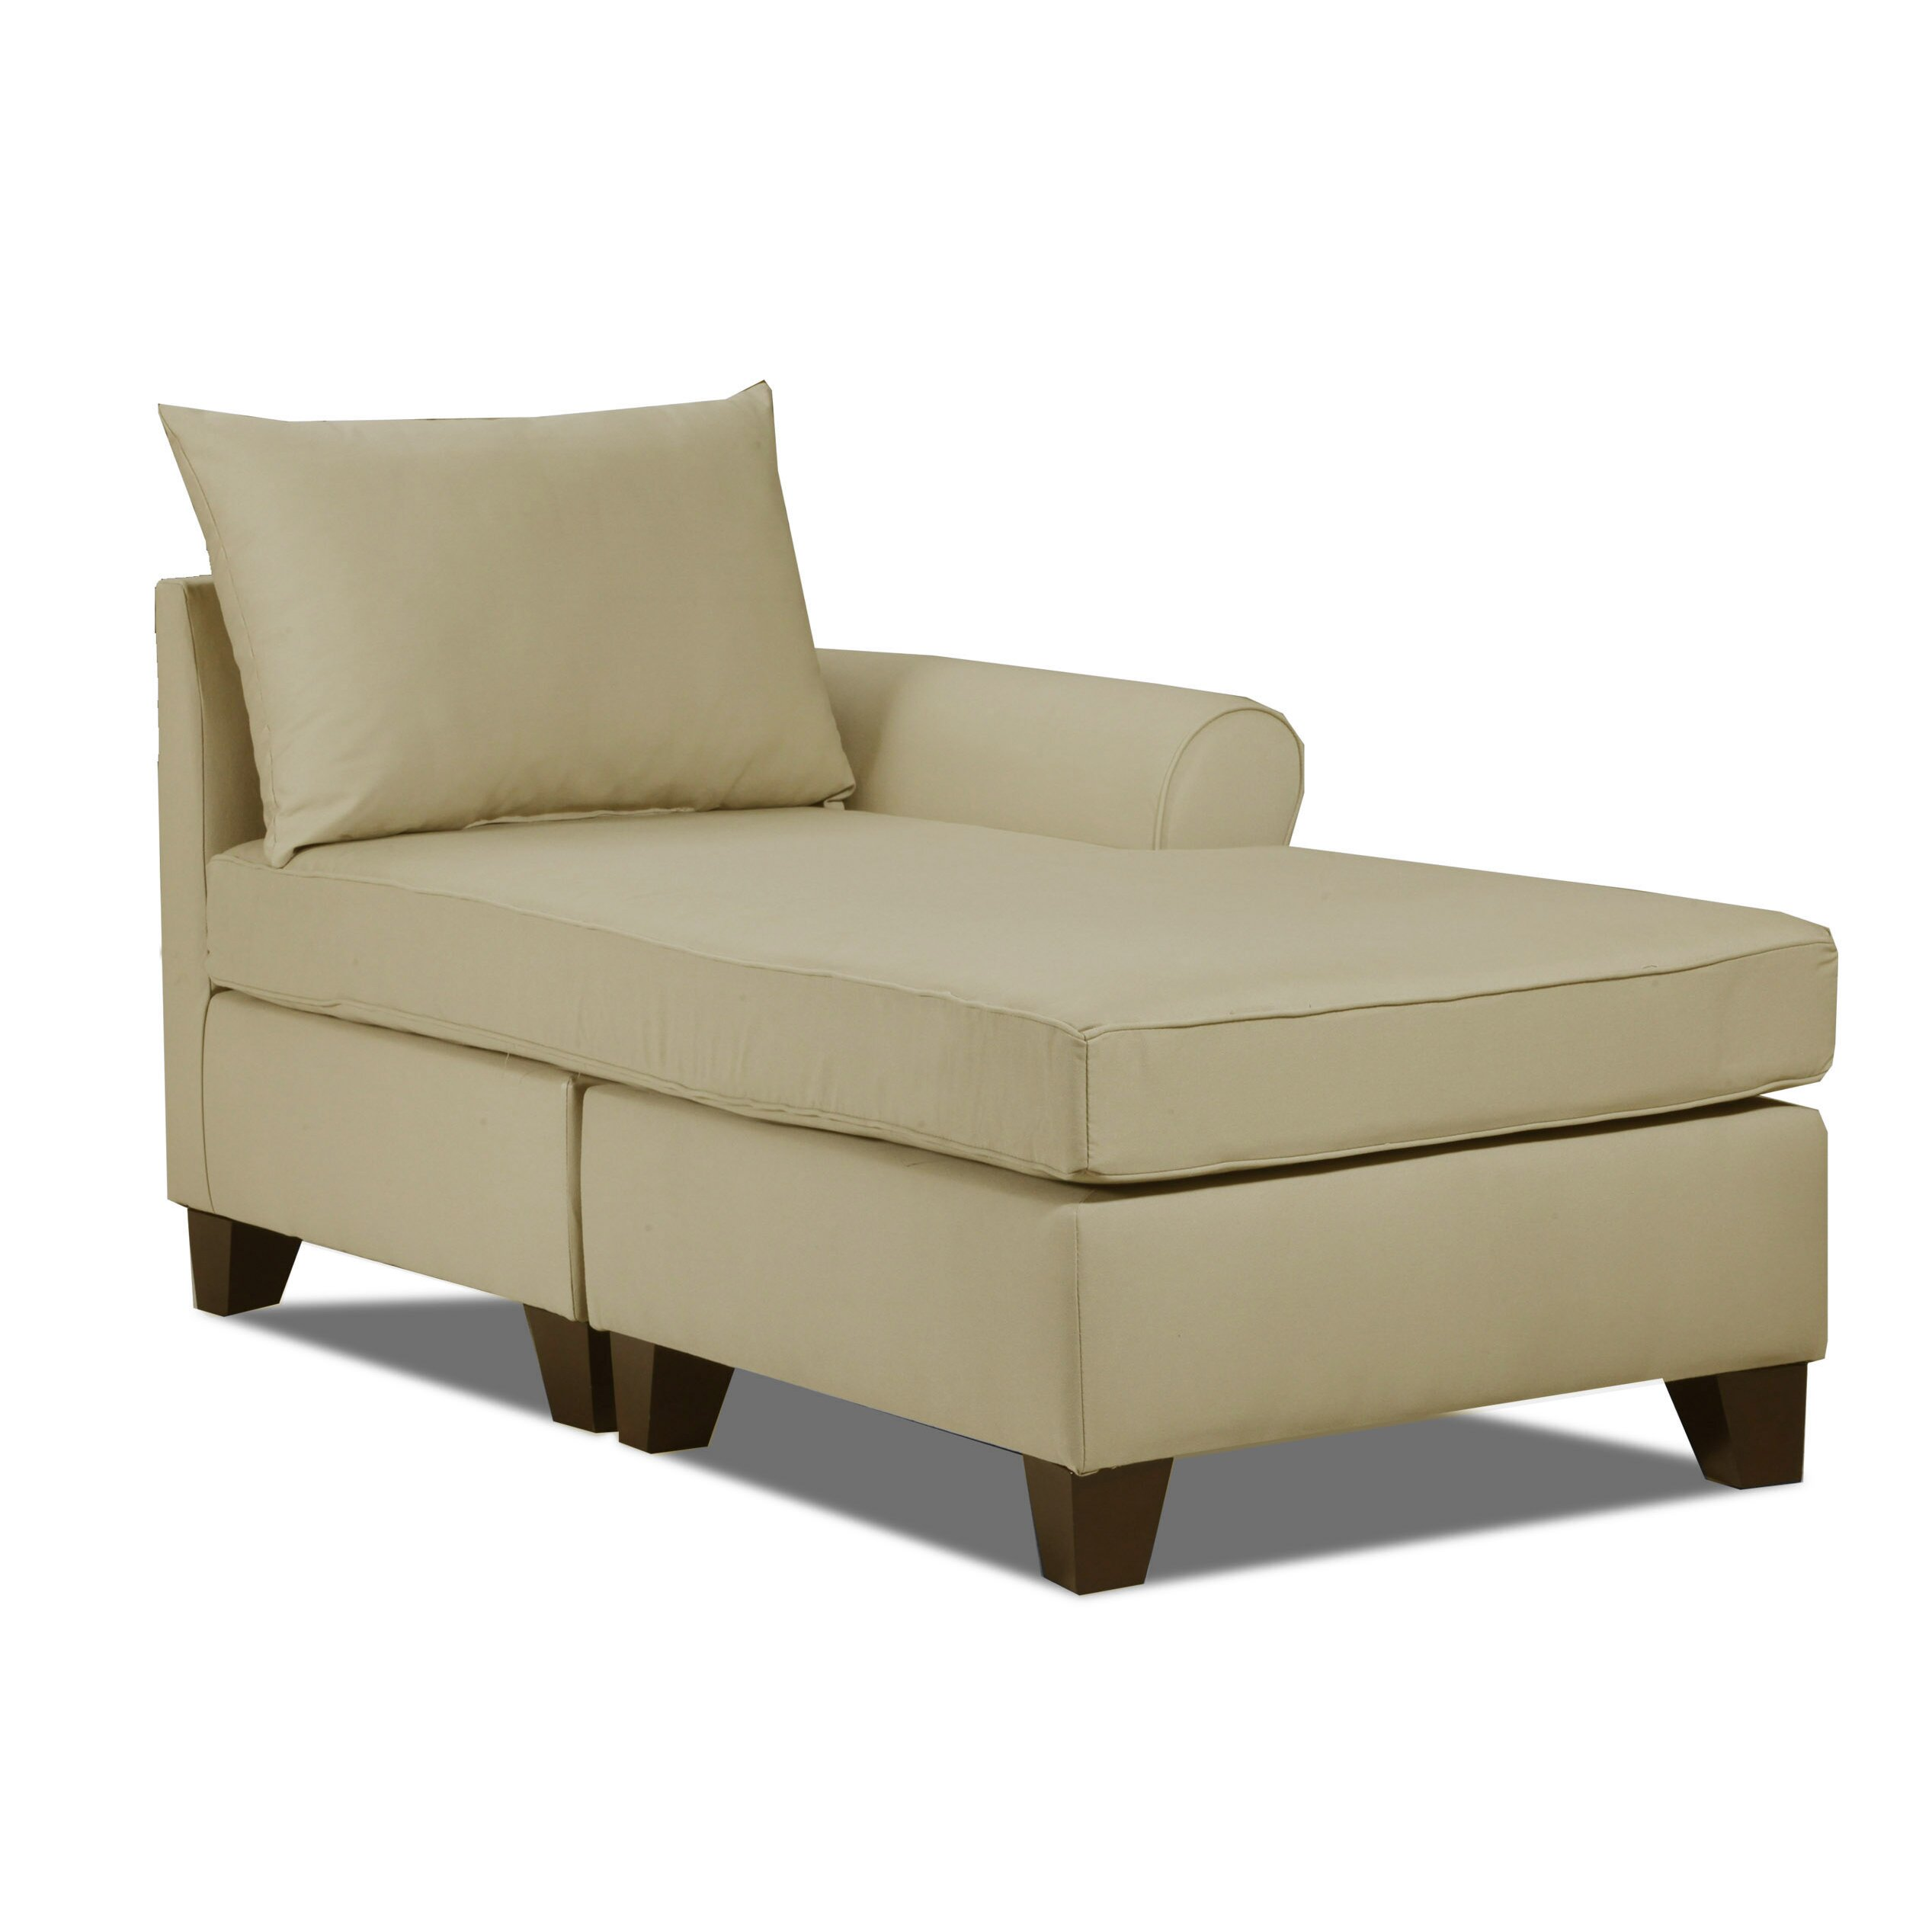 modern chaise lounges allmodern astaire linen chaise lounge